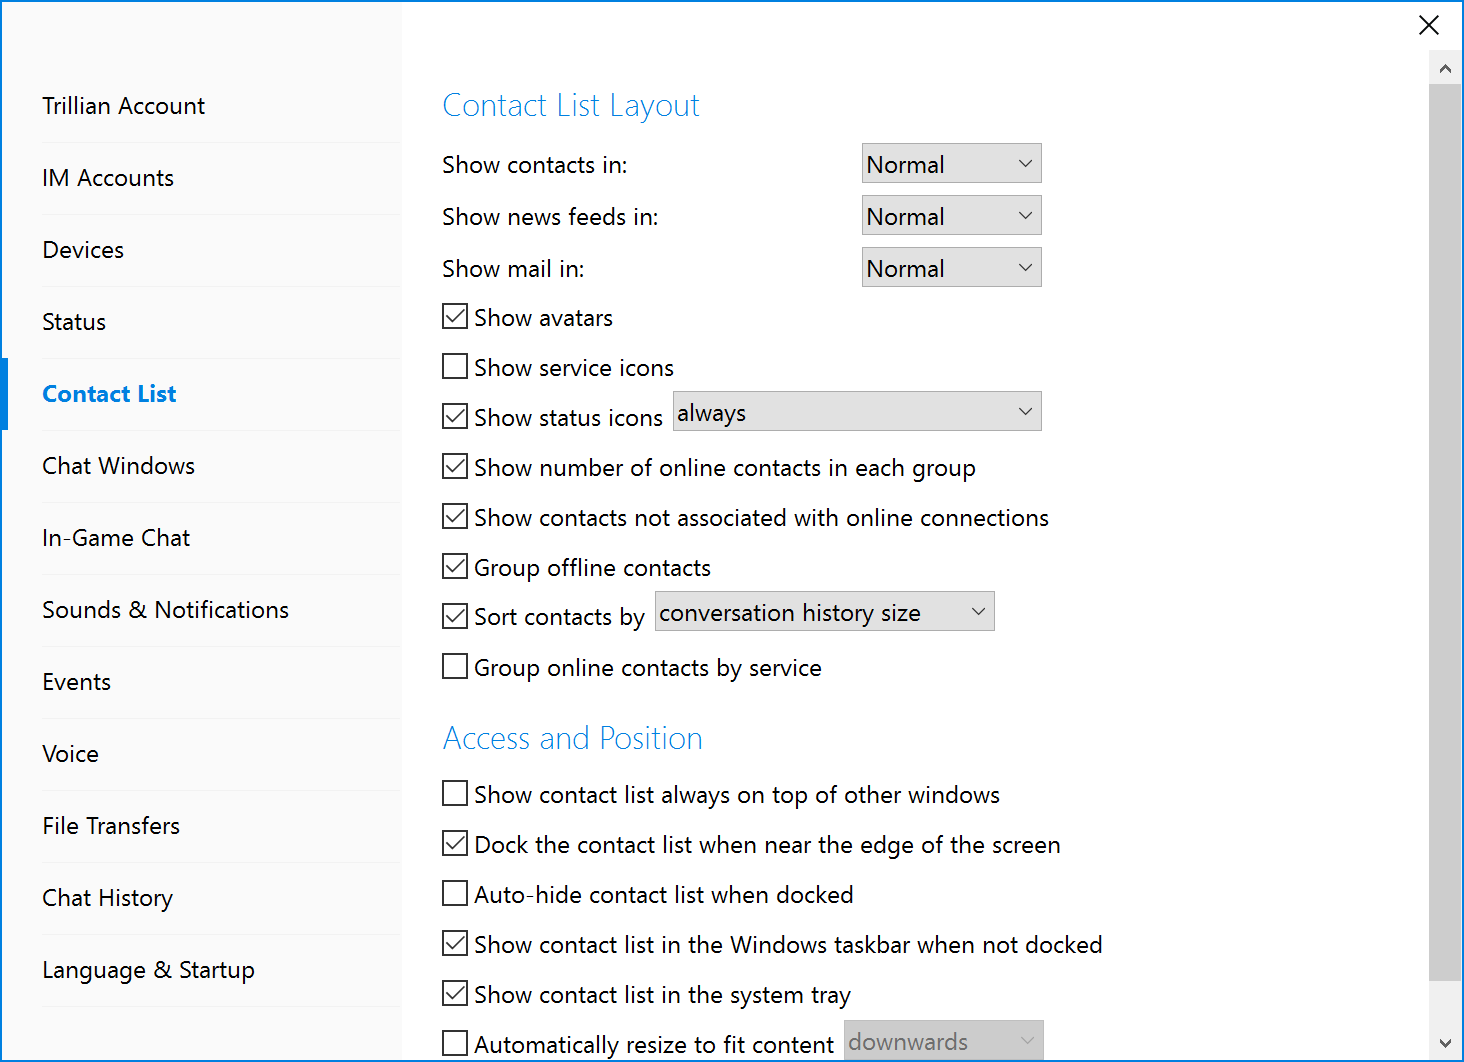 Contact List | Changing Contact List Layout Trillian